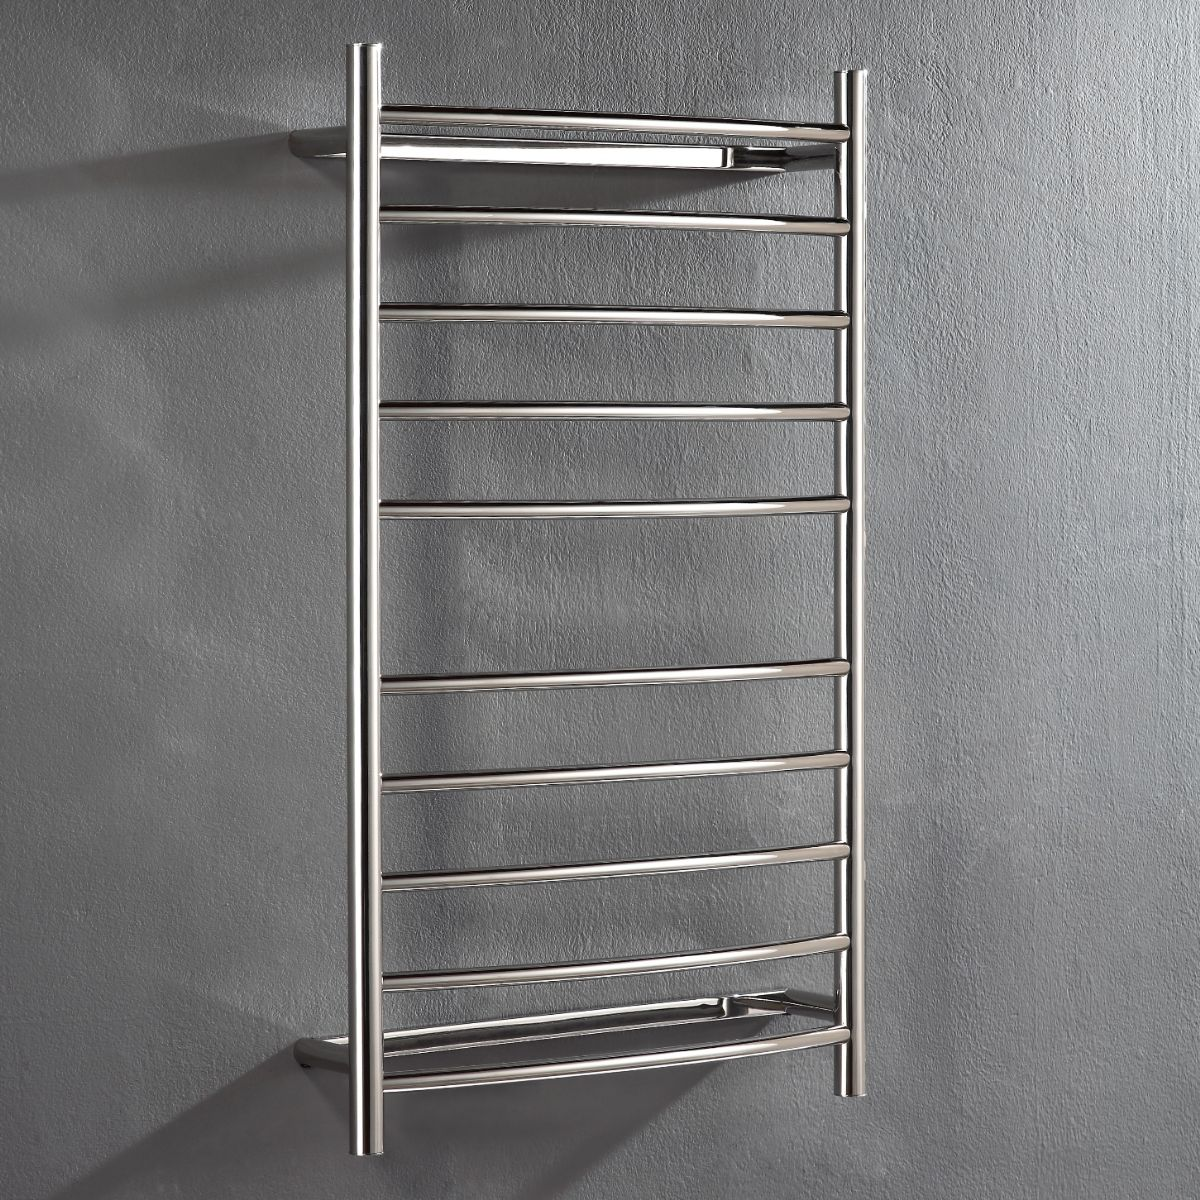 Heated Towel Rail: Hotwire 'Easy Fix' Curved Round. 10 Bar 115W Polished